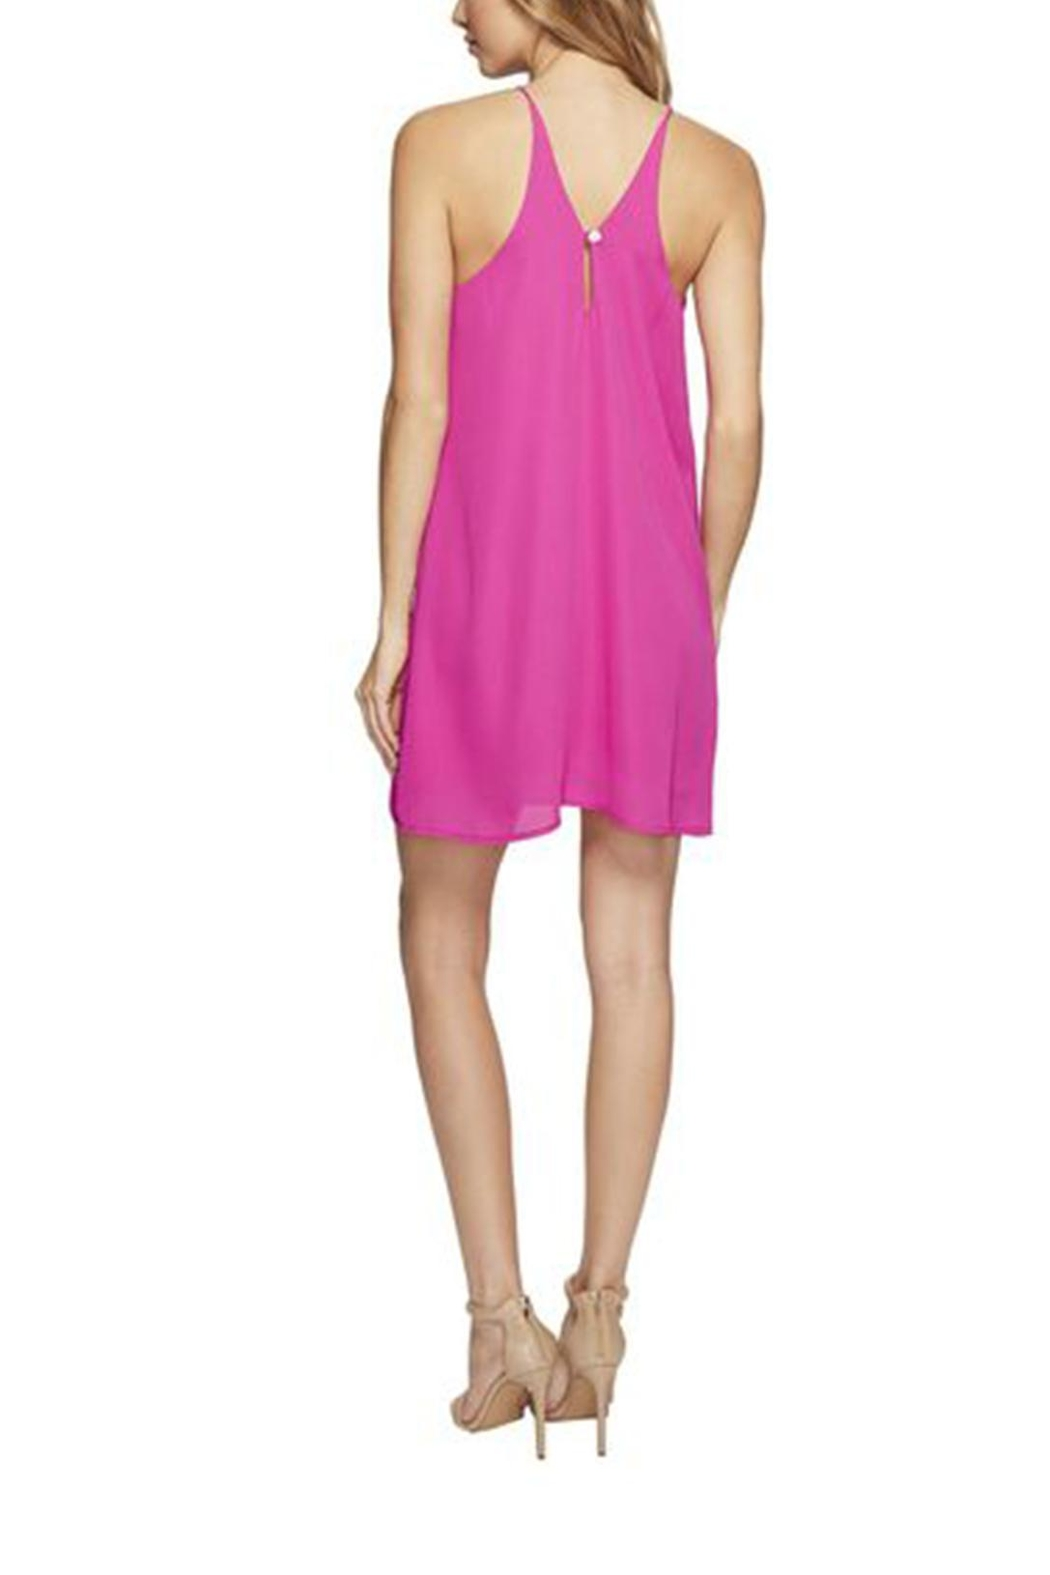 Lucy Love Pink Mini Dress - Side Cropped Image